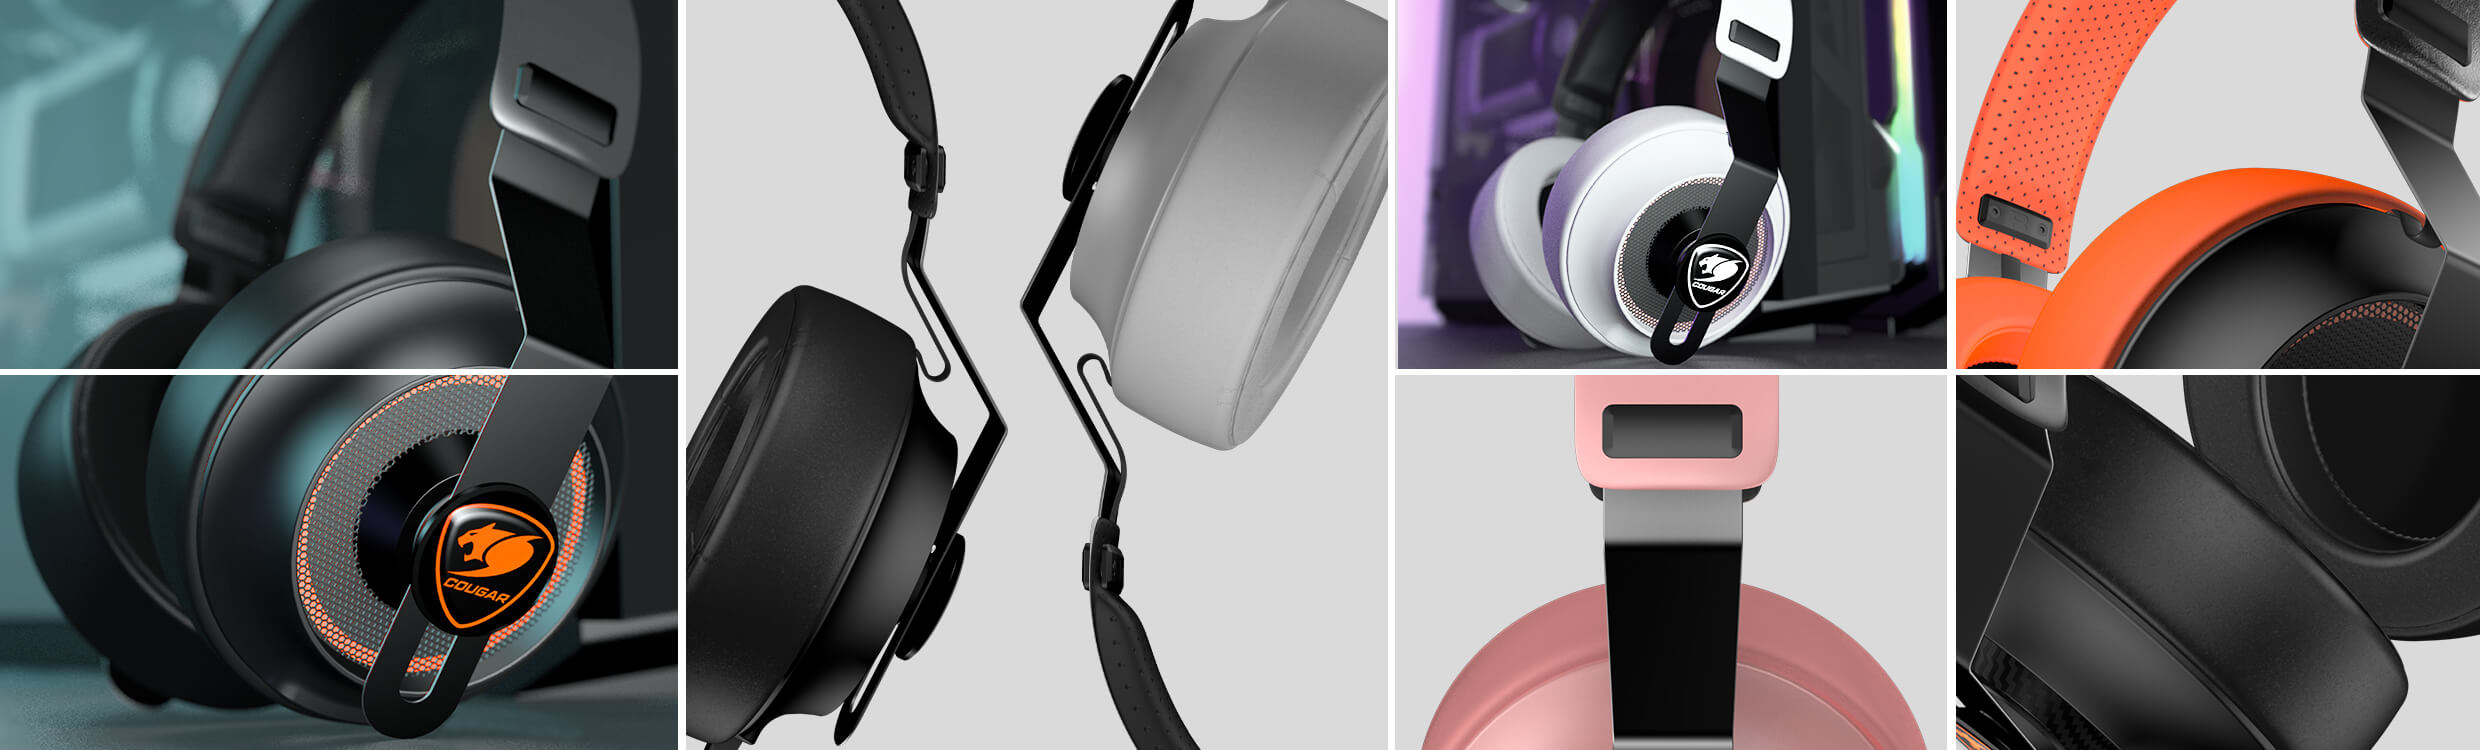 Cougar PHONTUM ESSENTIAL Stereo Gaming Headset - Pink 5